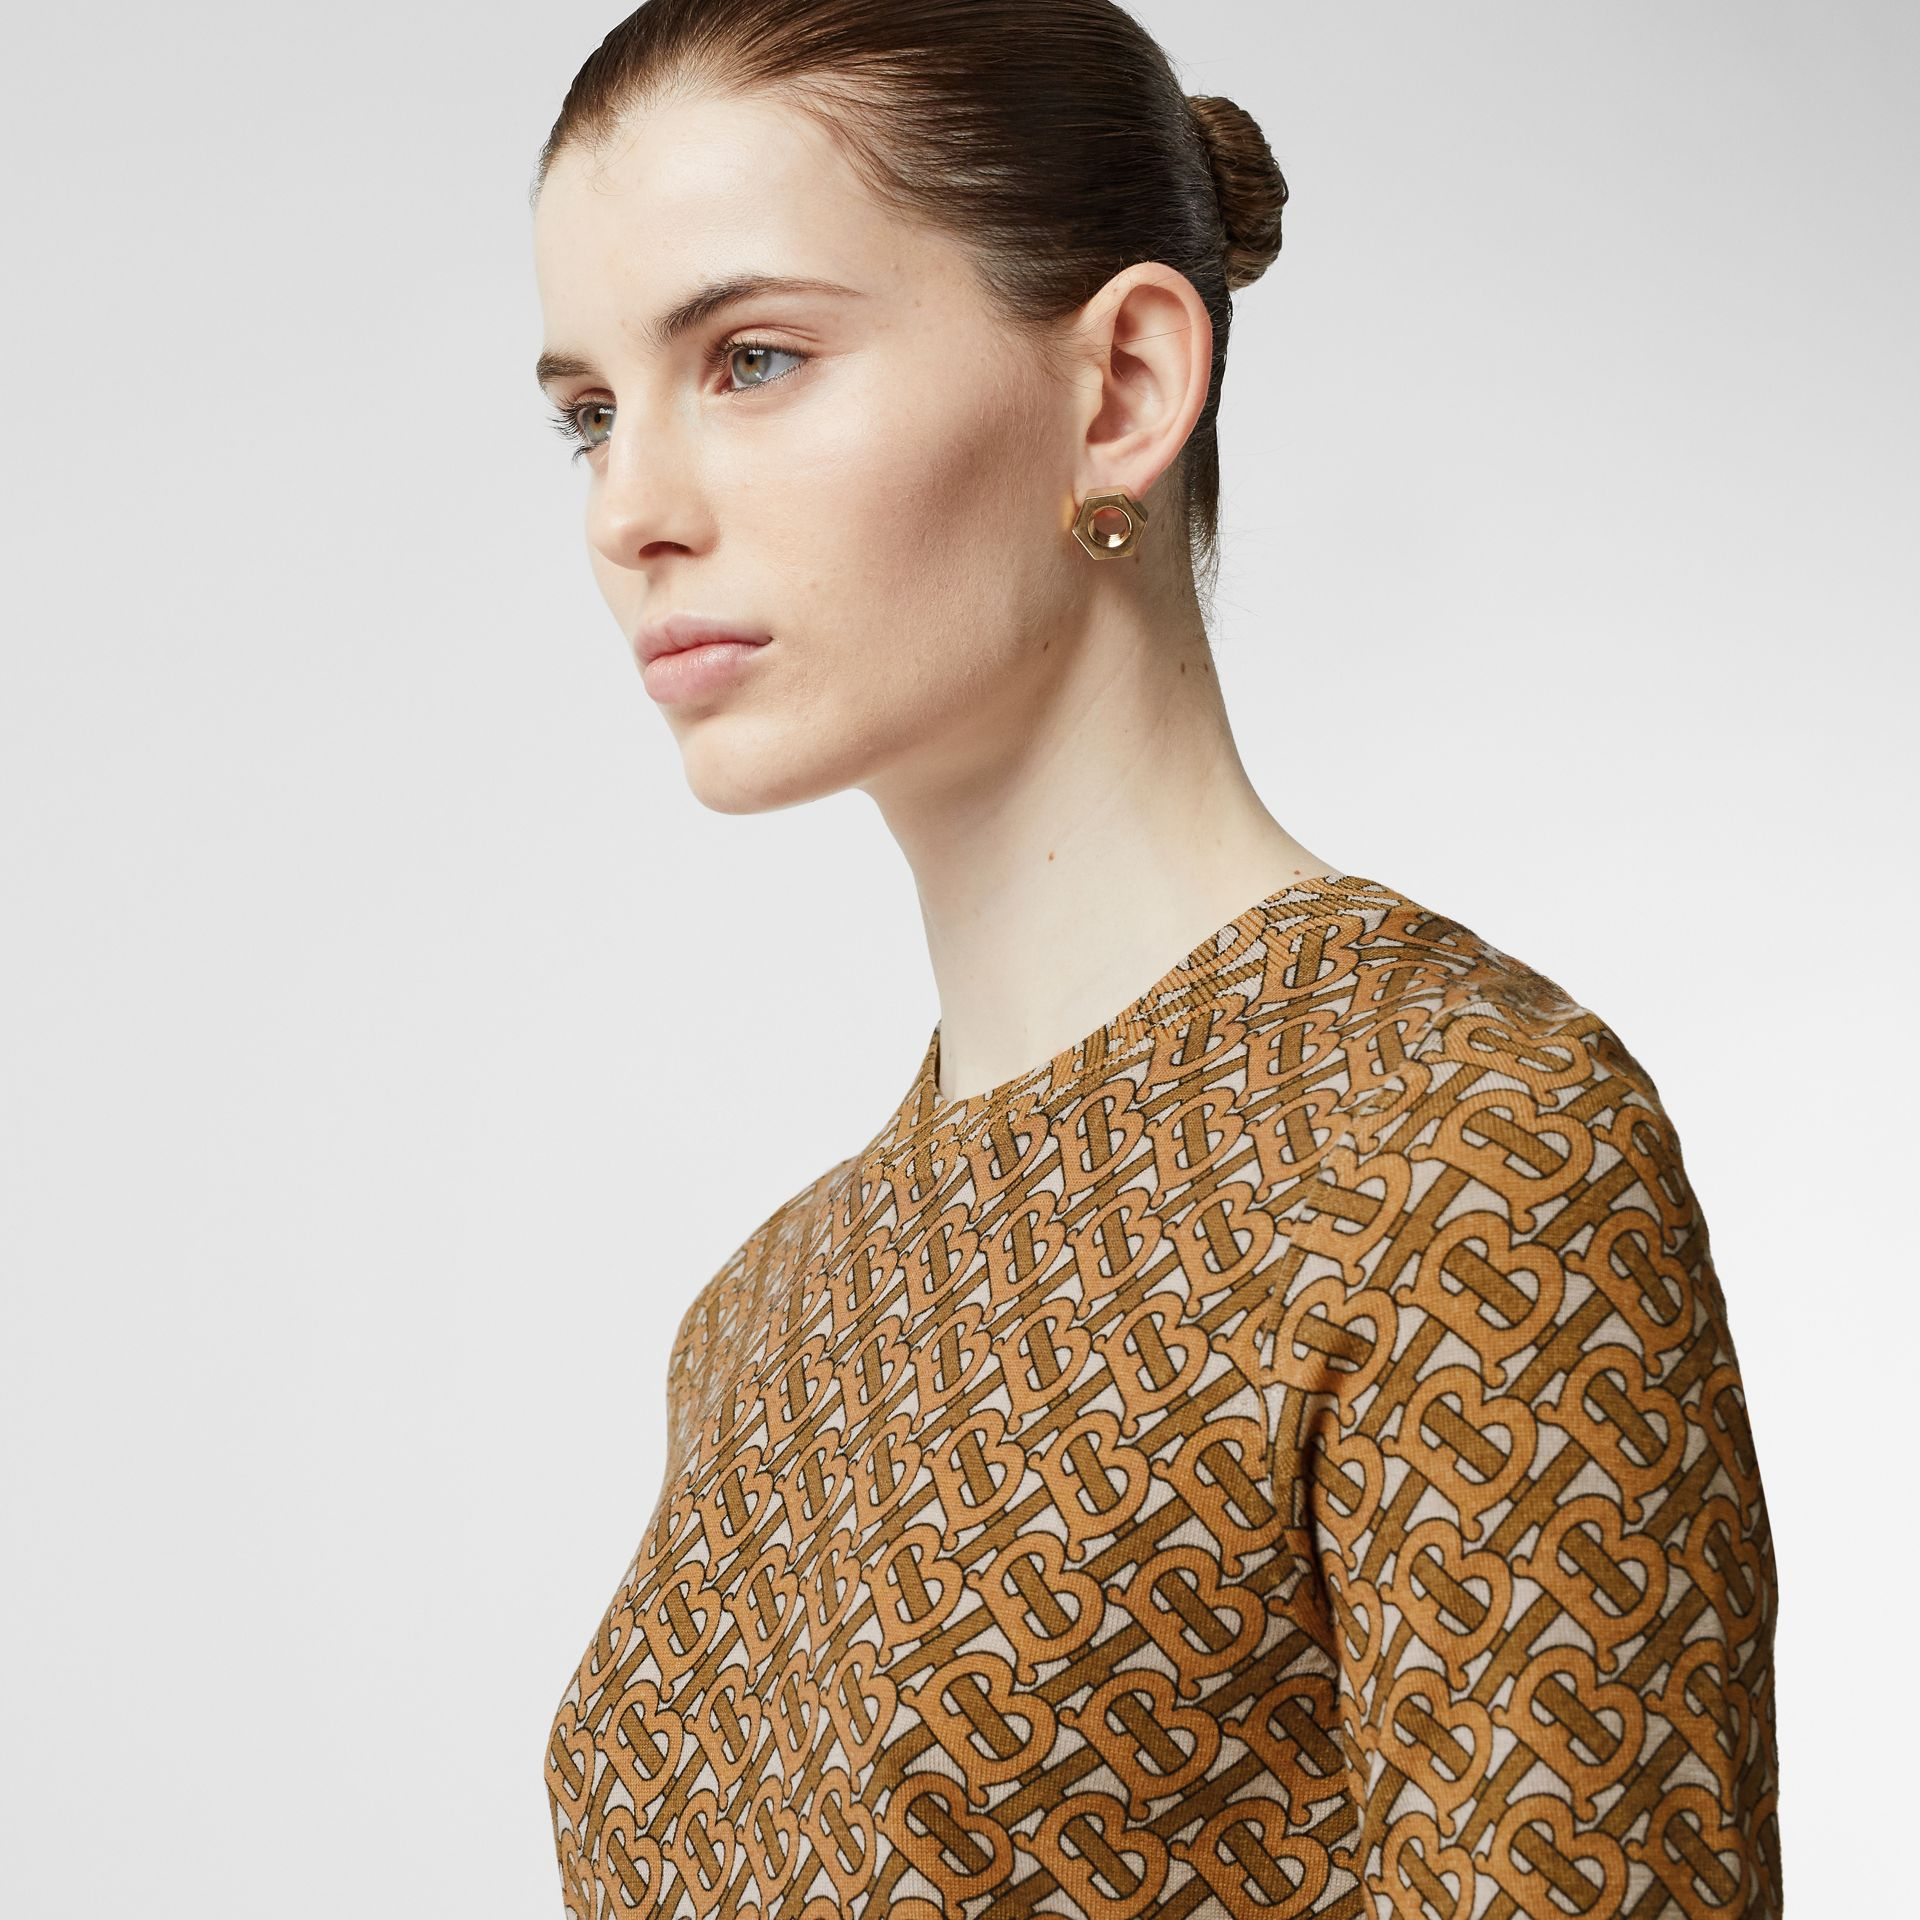 Monogram Print Merino Wool Top in Beige - Women | Burberry United Kingdom - gallery image 1